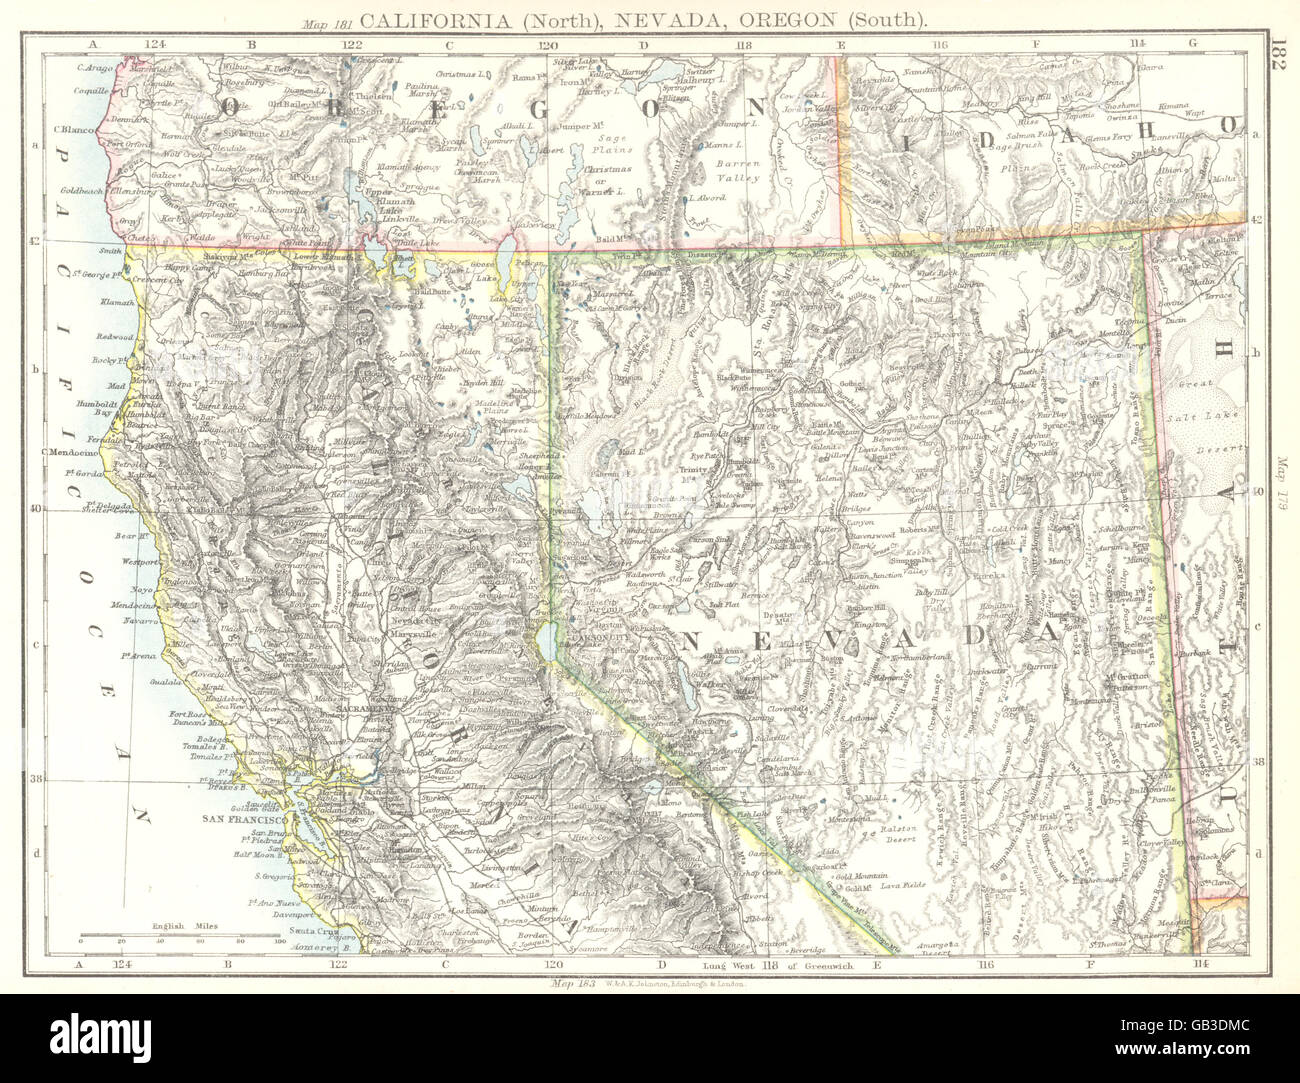 USA: California (North) Nevada, Oregon (South) , 1897 ...